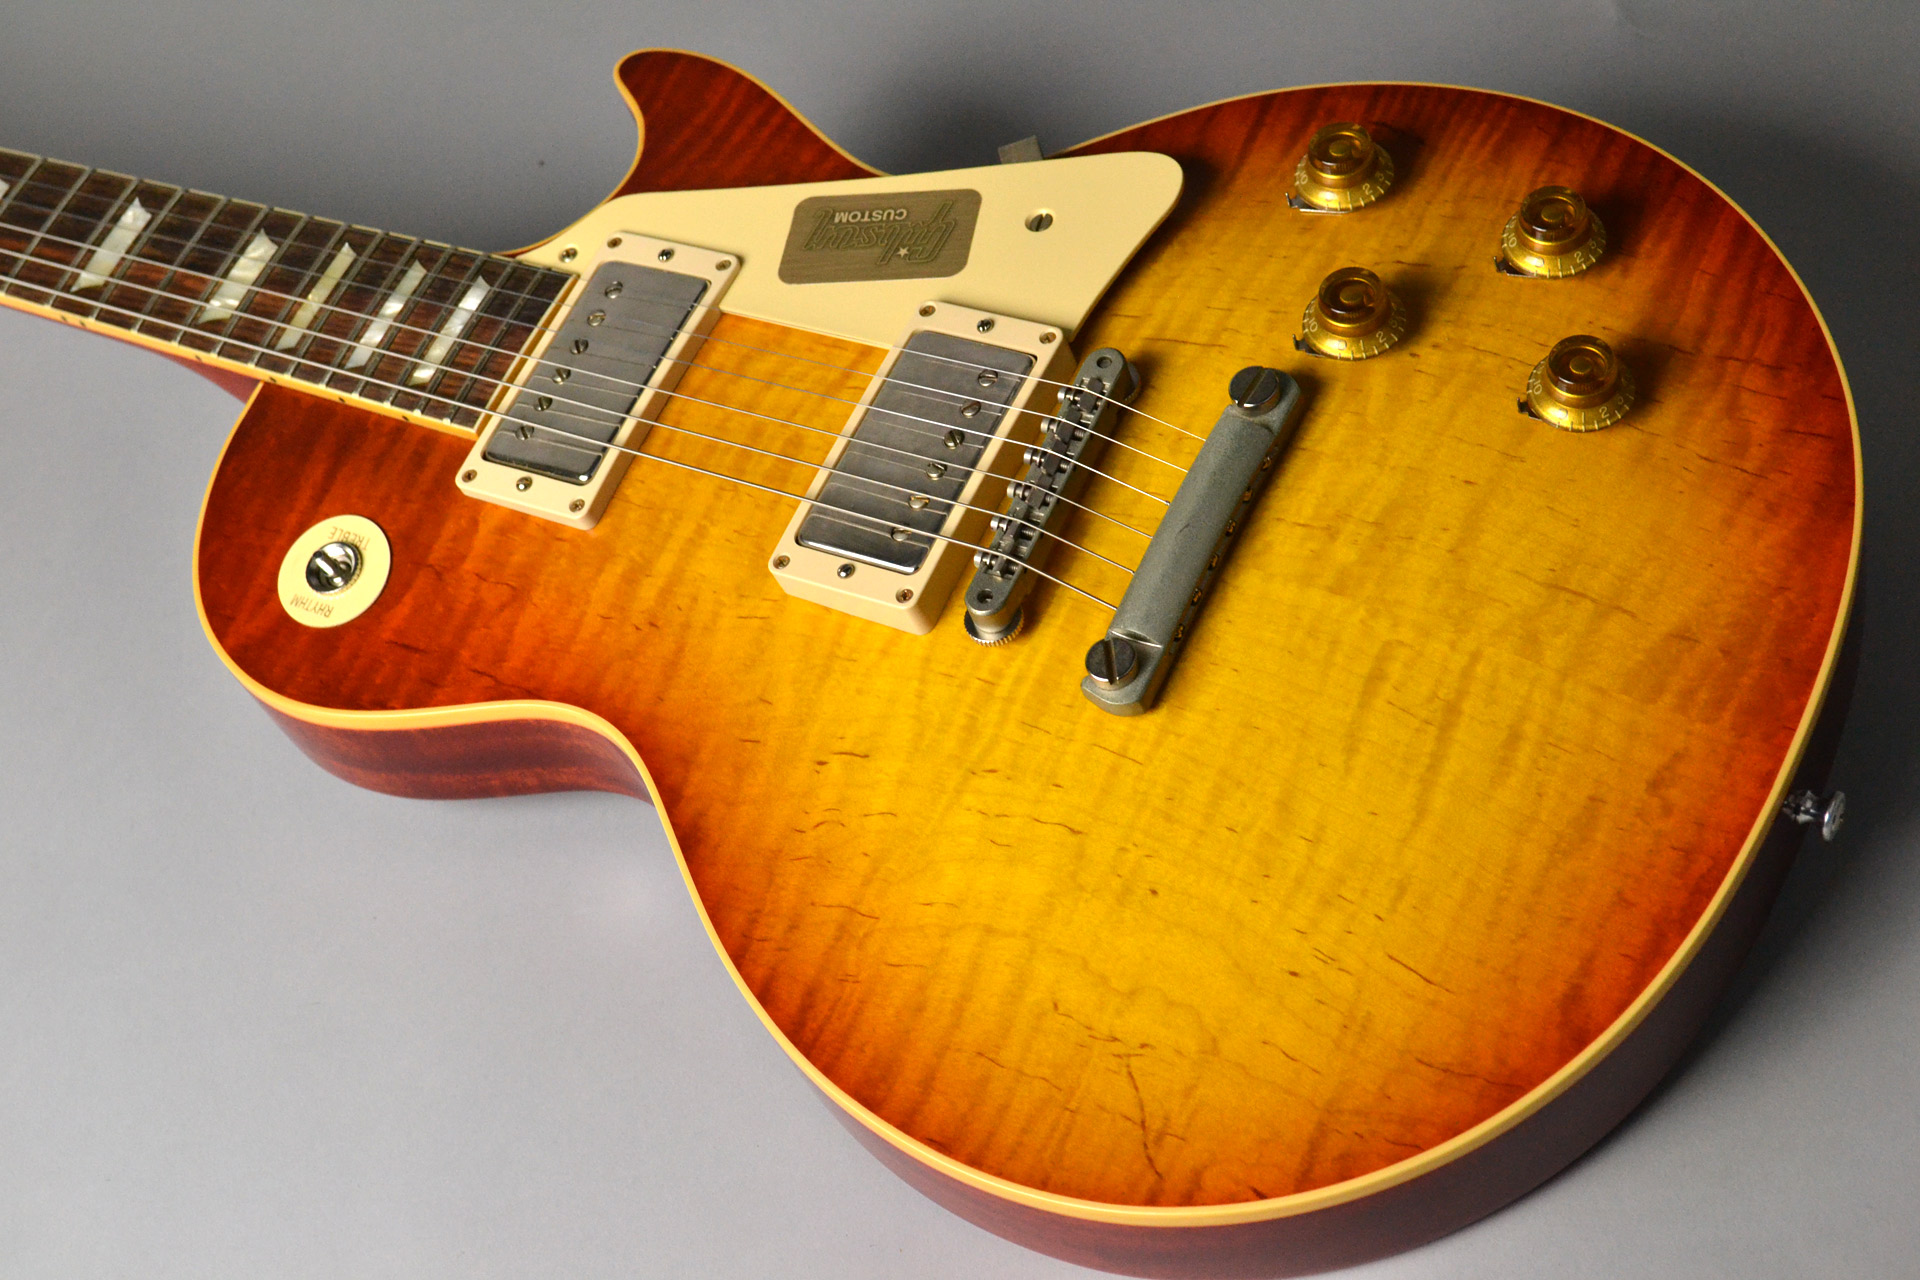 1959 Les Paul Standard Reissue VOS Sonoran Fadeのケース・その他画像